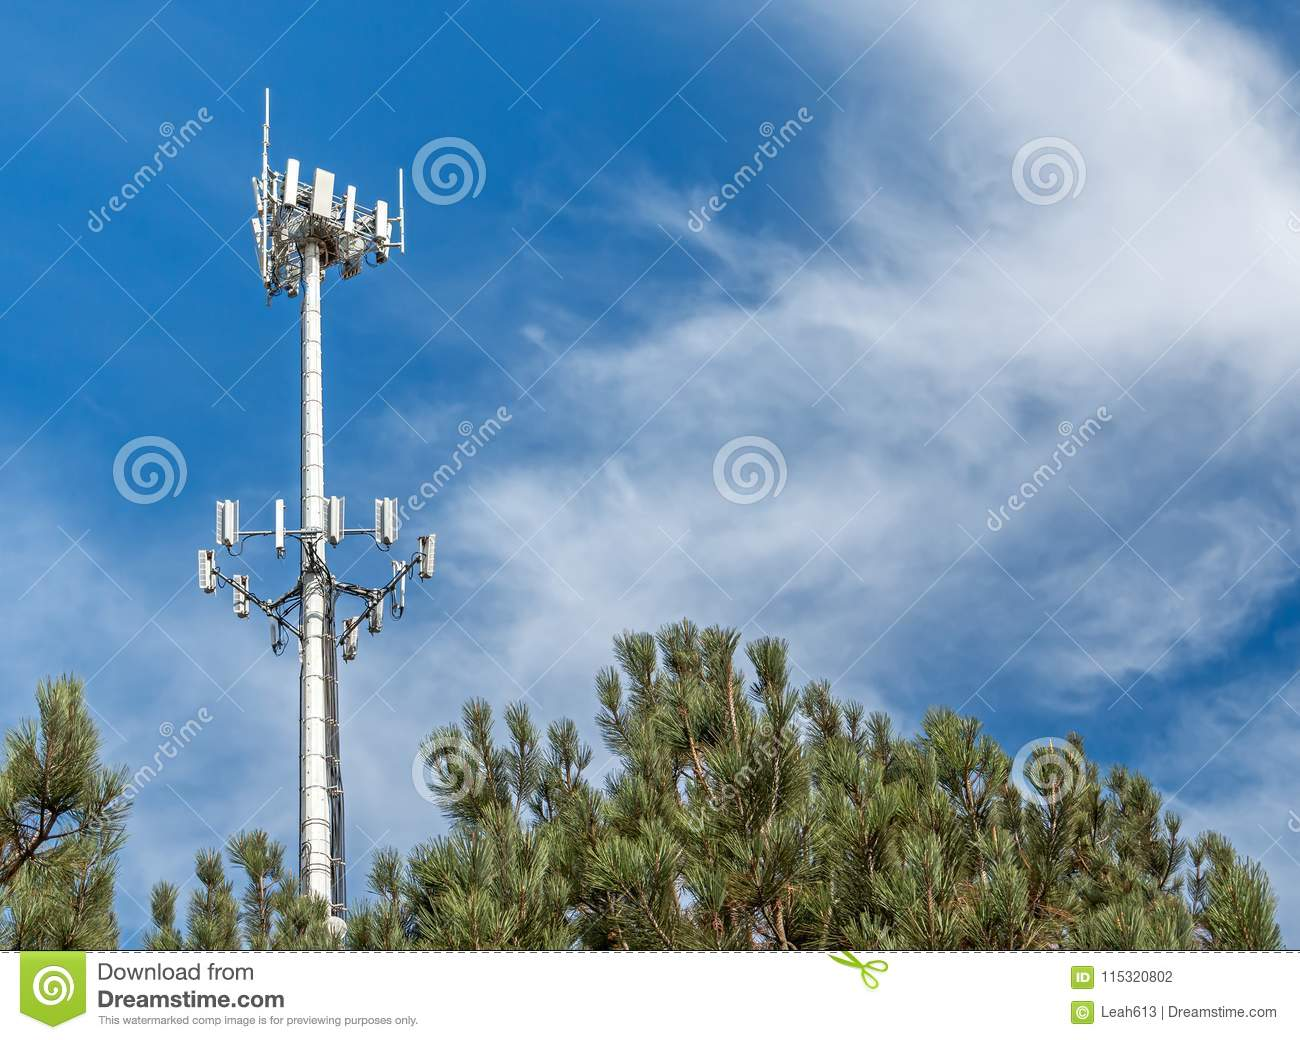 Tall Telecommunication Monopole Tower Behind Pine Trees  Stock Photo